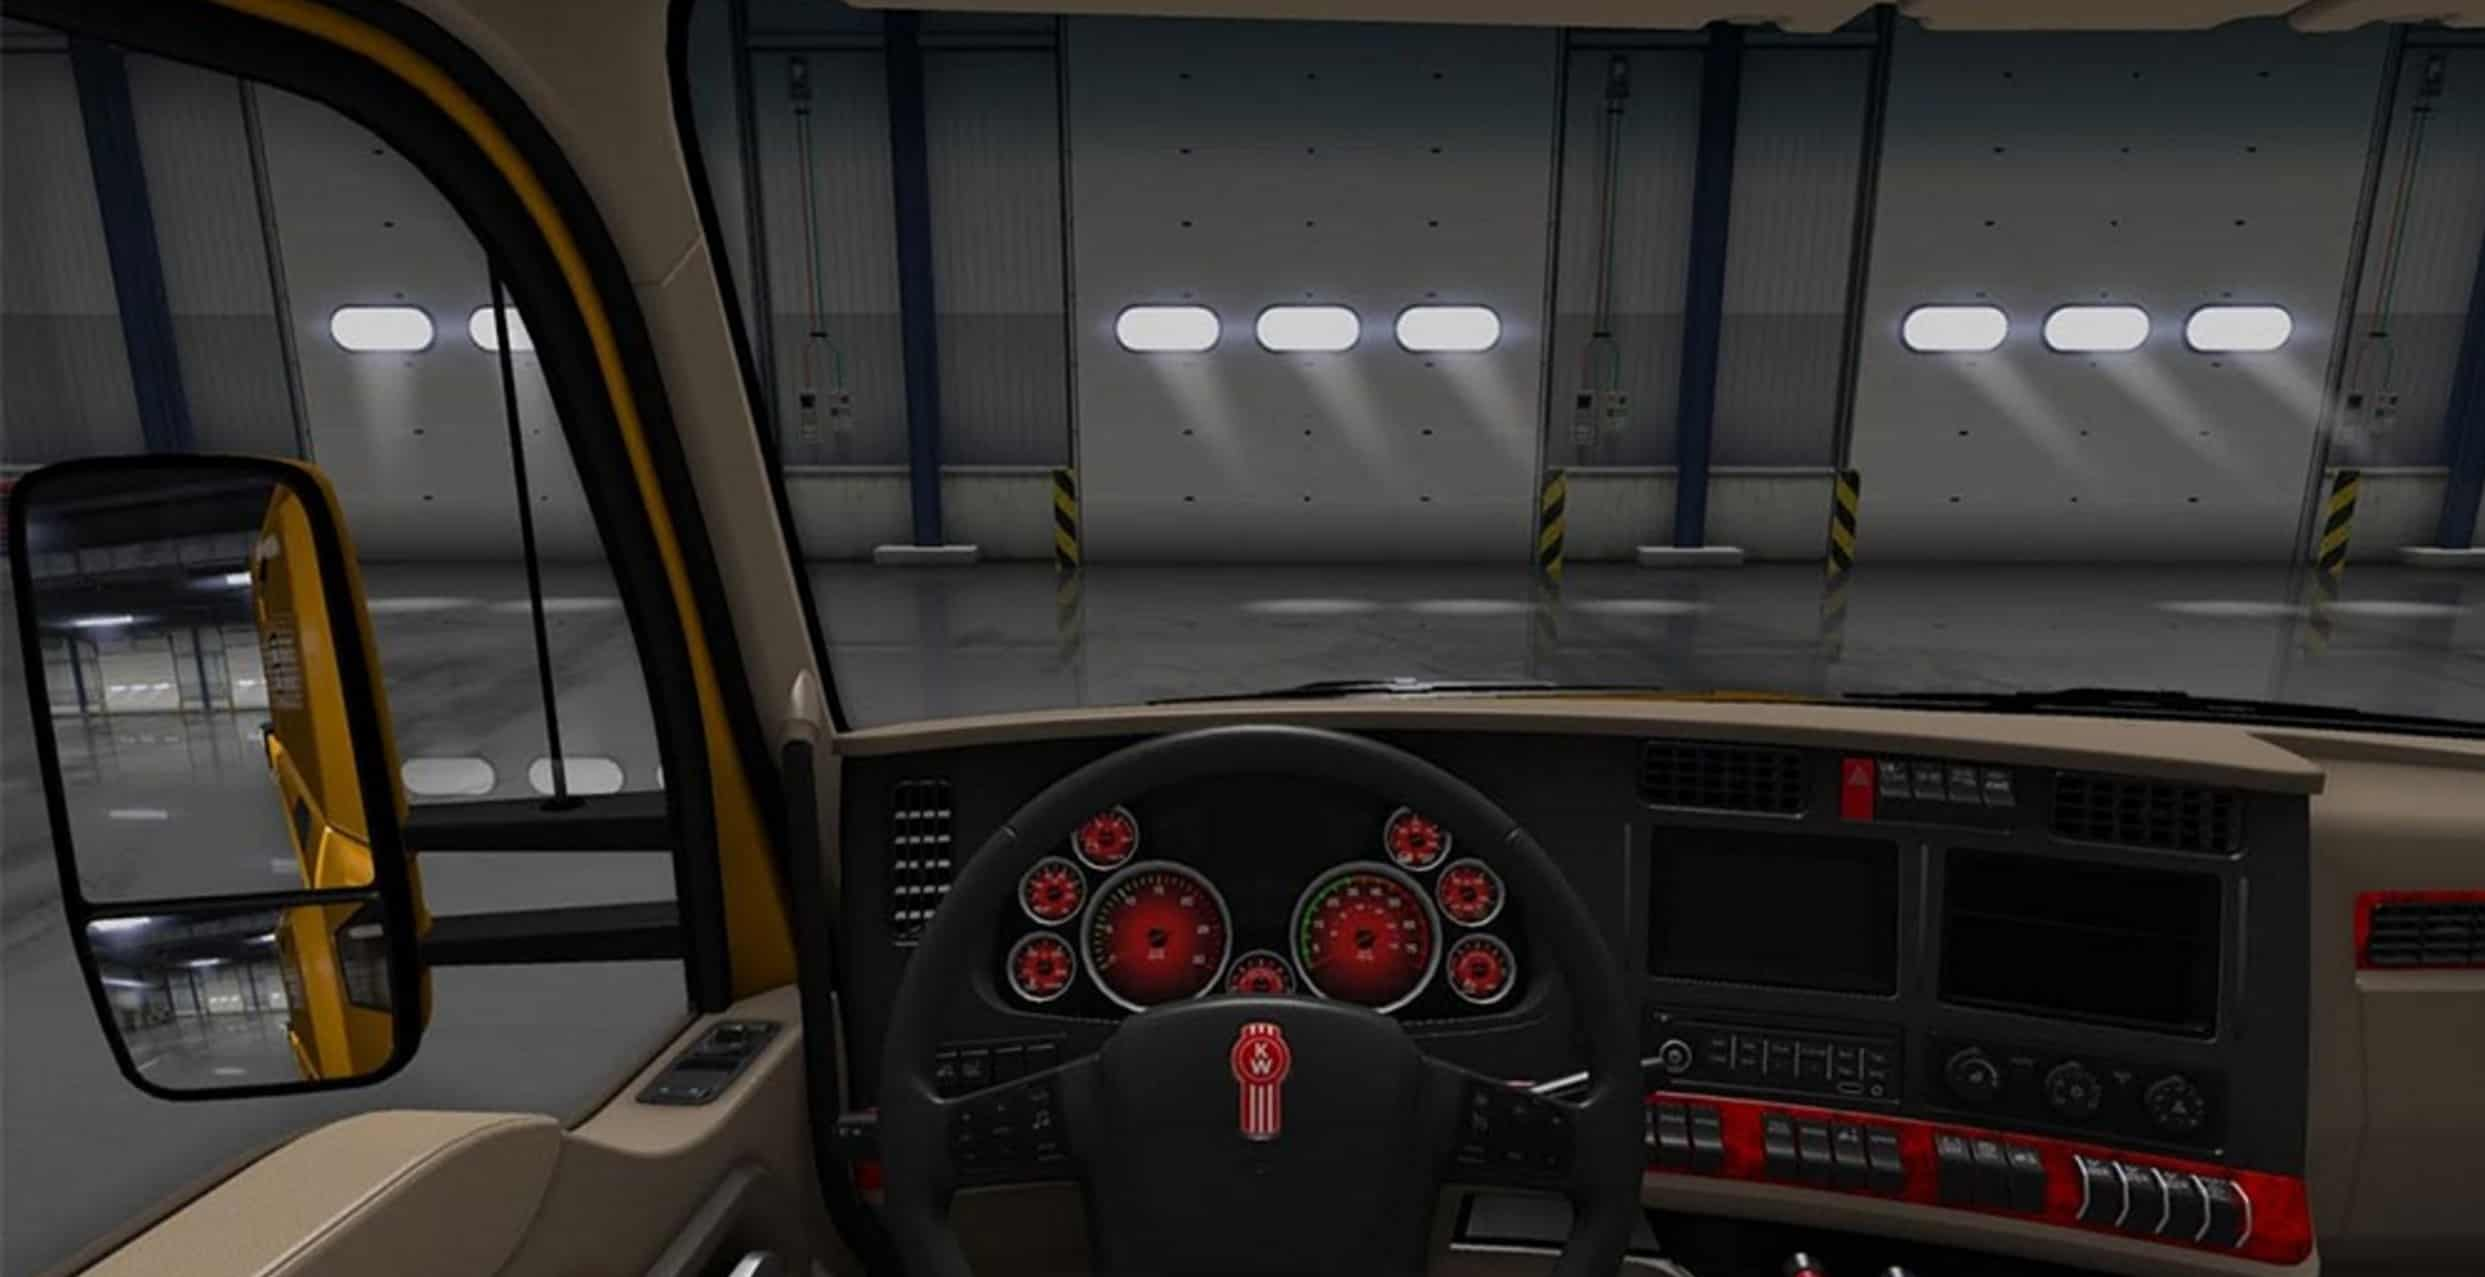 Kenworth t680 Dashboard red Mod 2 kenworth t680 dashboard red mod american truck simulator mod 2016 kenworth t680 fuse box diagram at readyjetset.co